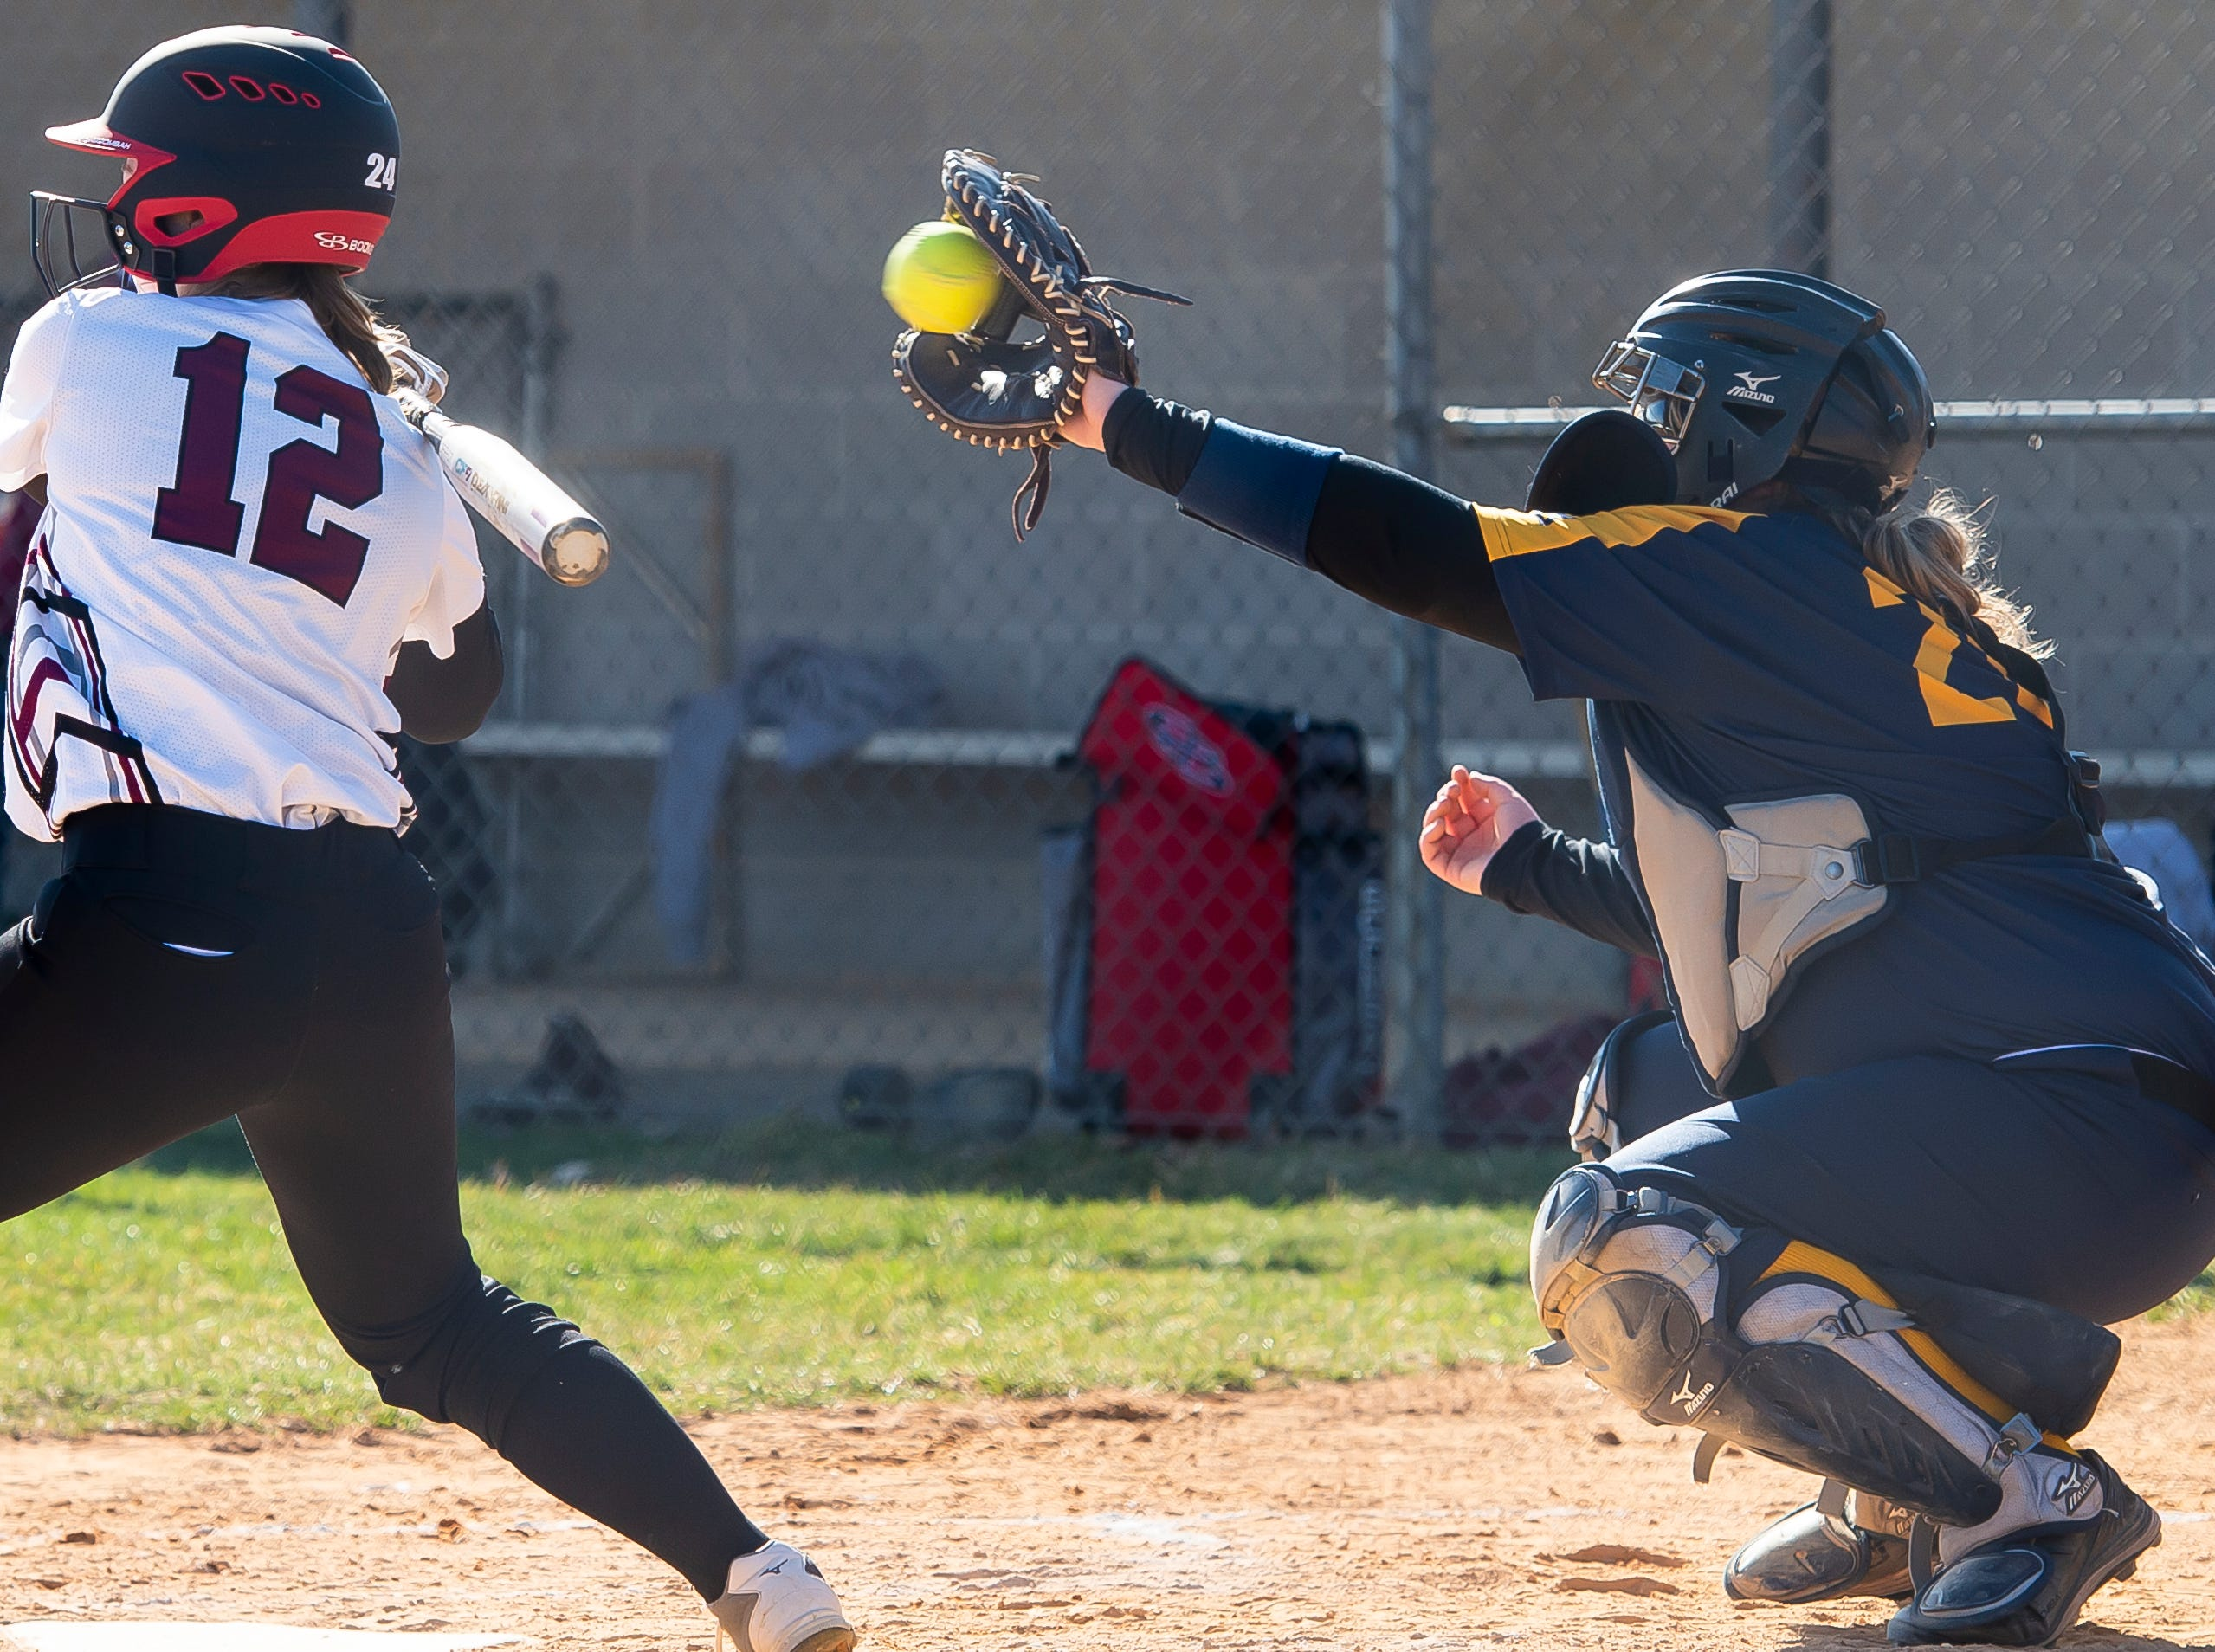 Littlestown catcher Bailey Smith gloves a pitch from pitcher Amaya Bowman during a YAIAA softball game against Gettysburg on Monday, April 1, 2019. The Bolts won 10-4.